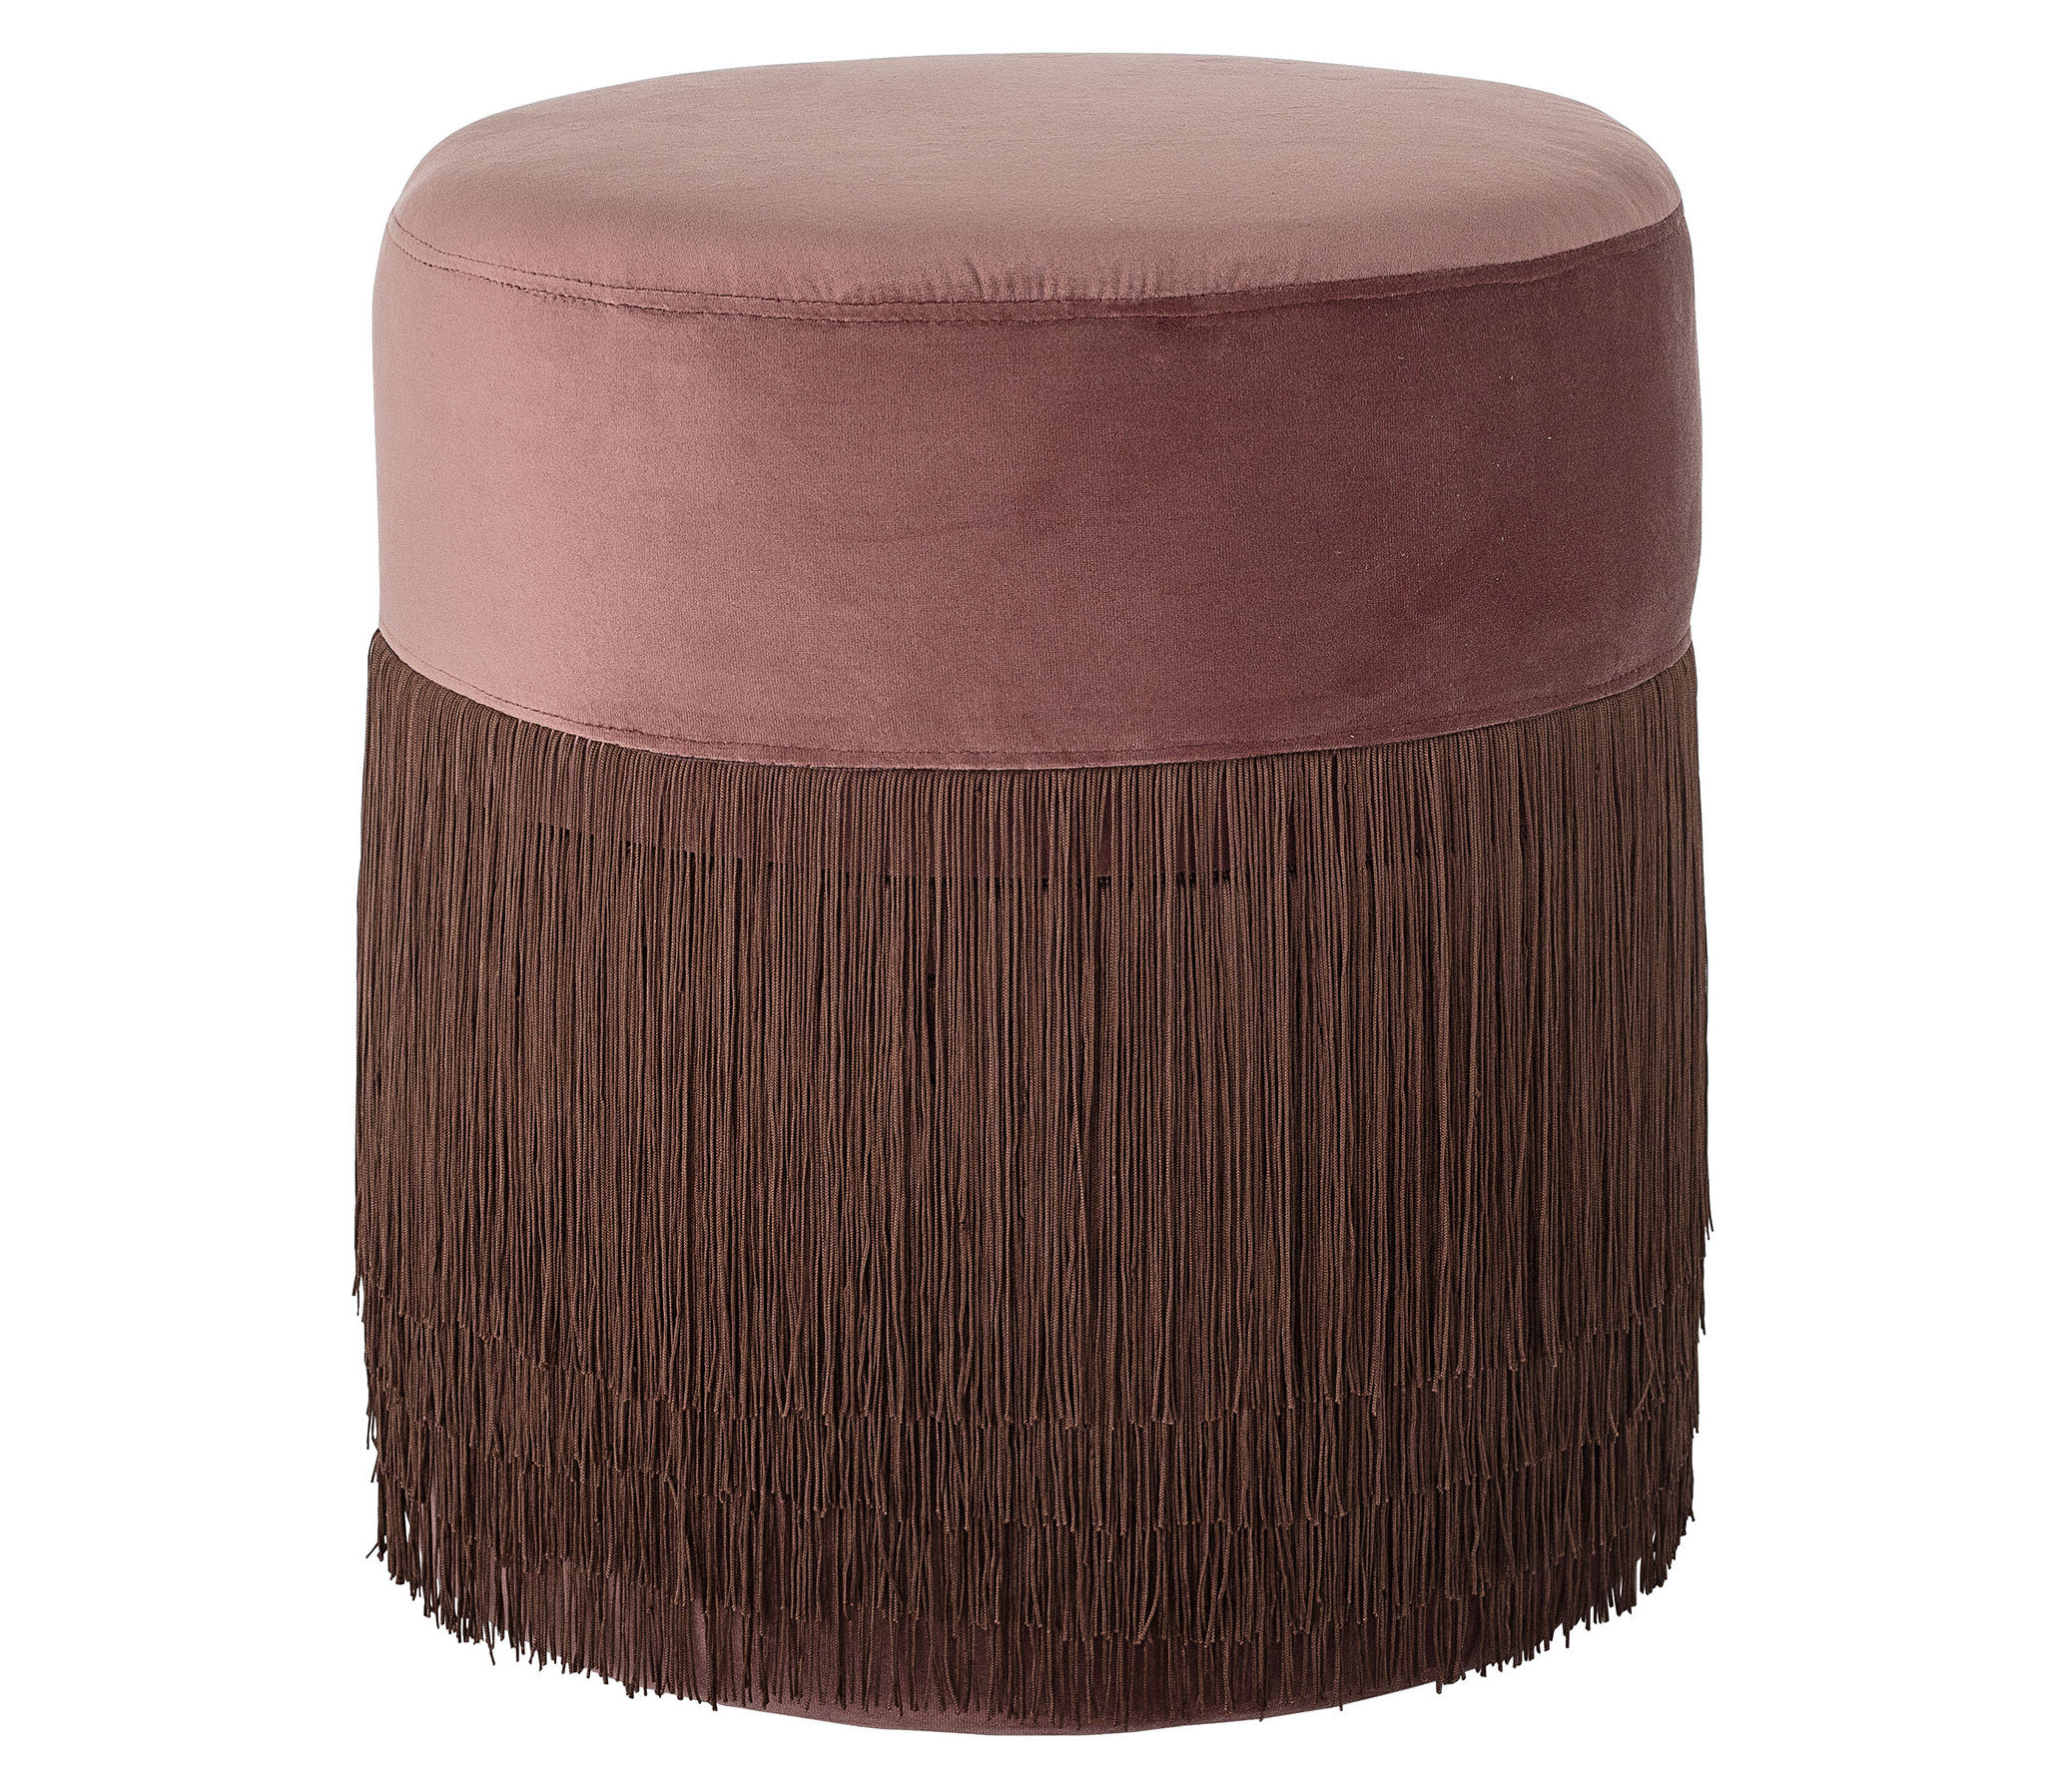 Furniture - Poufs & Floor Cushions - Grandma Small Pouf - / Ø 40 cm - Velvet & fringes by Bloomingville - Old rose - Polyester velvet